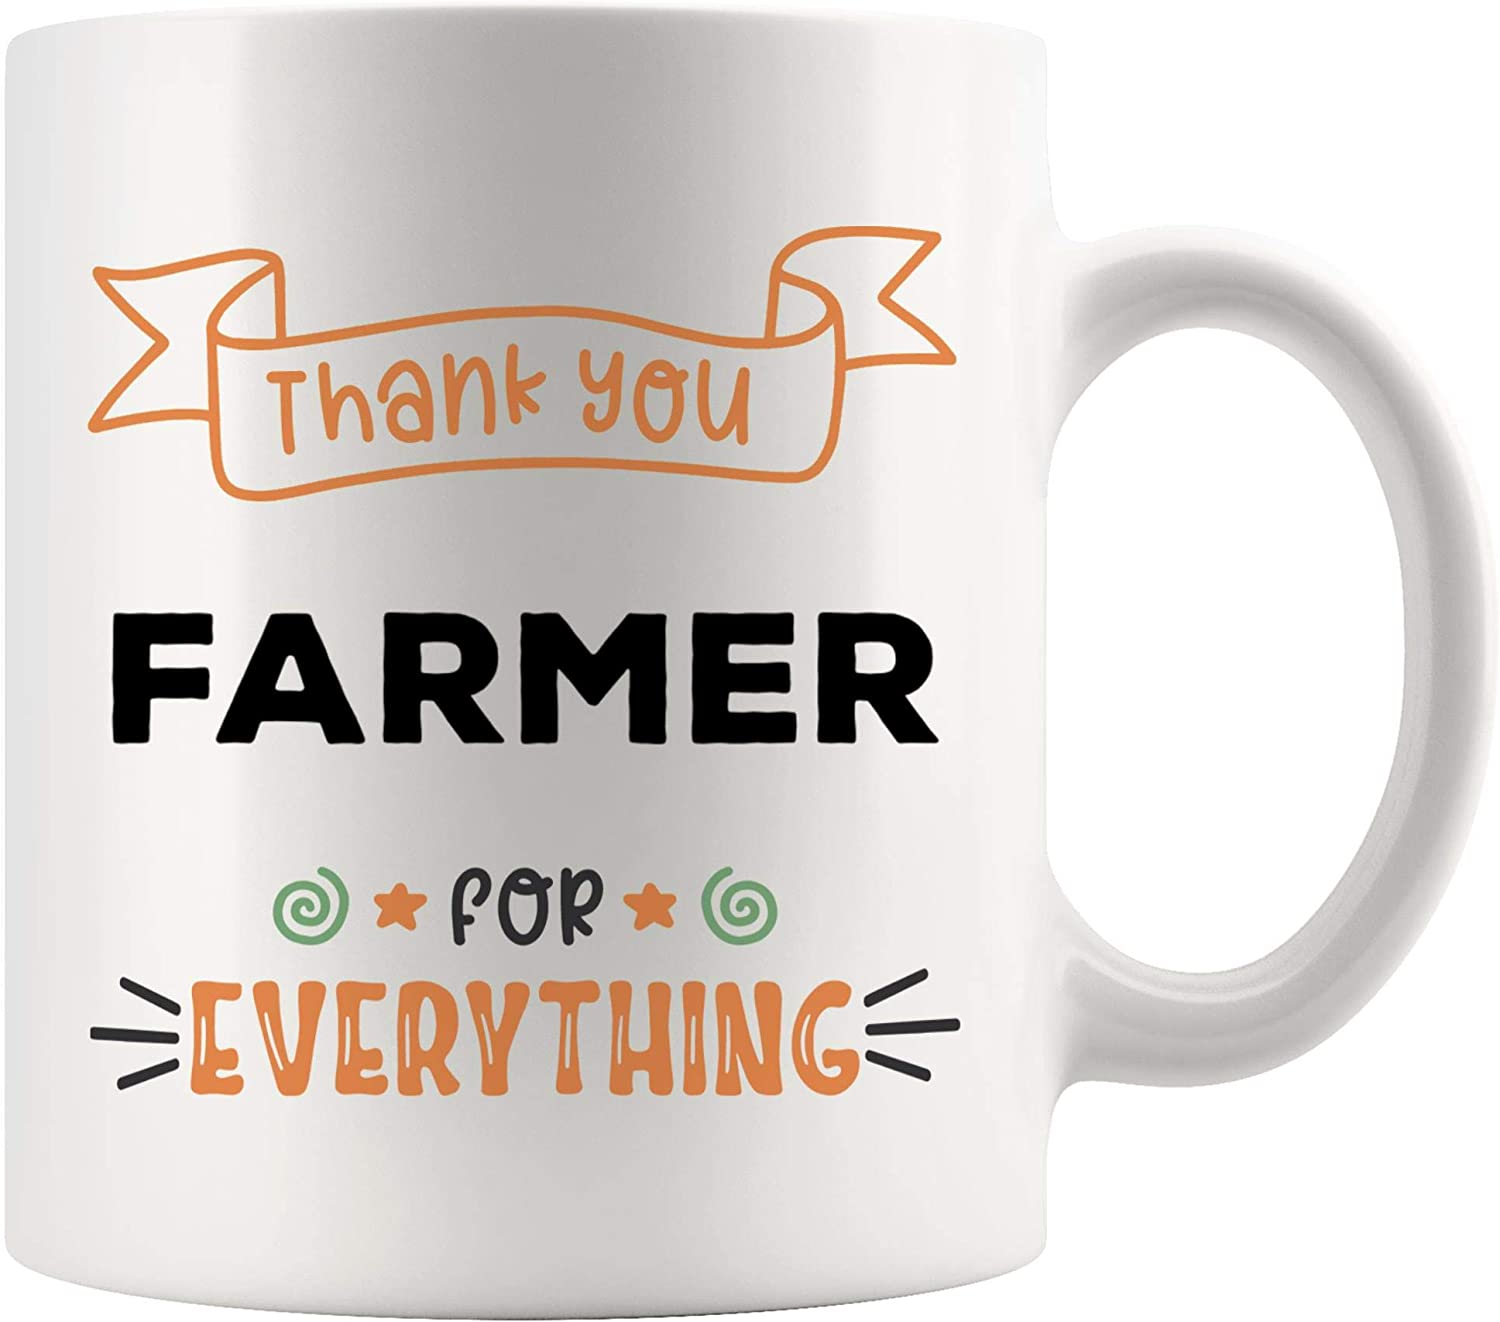 Amazon Com Thank You Everything Farmer Mug Best Coffee Cup Gift Thanksgiving Appreciation Gifts Ideas Best Dairy Farmers Market Funny Gift World Mom Dad Future Most Awesome Kitchen Dining